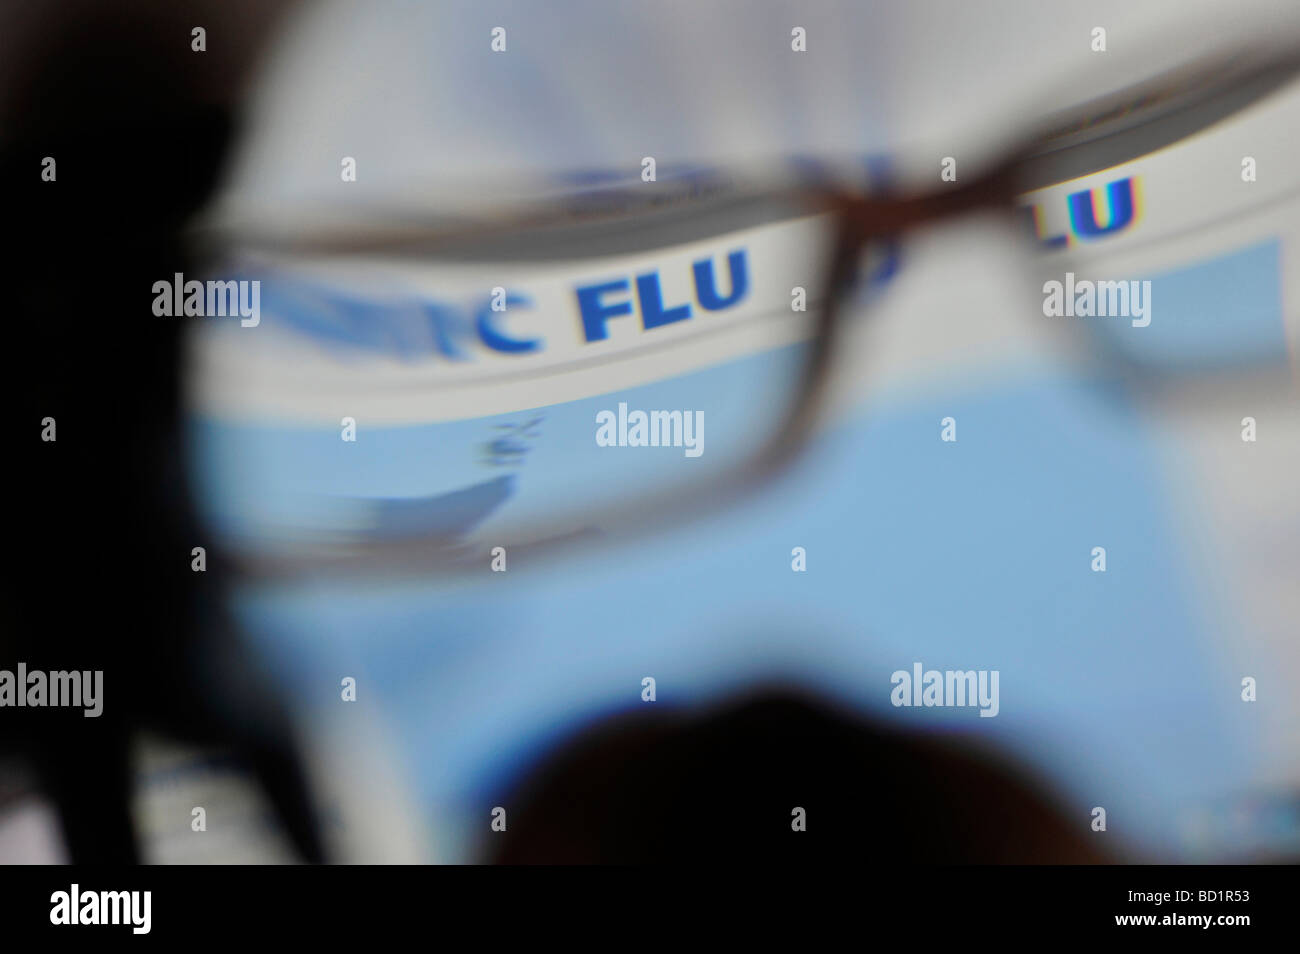 Pandemic flu hotline website on the internet for UK through blurry glasses Stock Photo